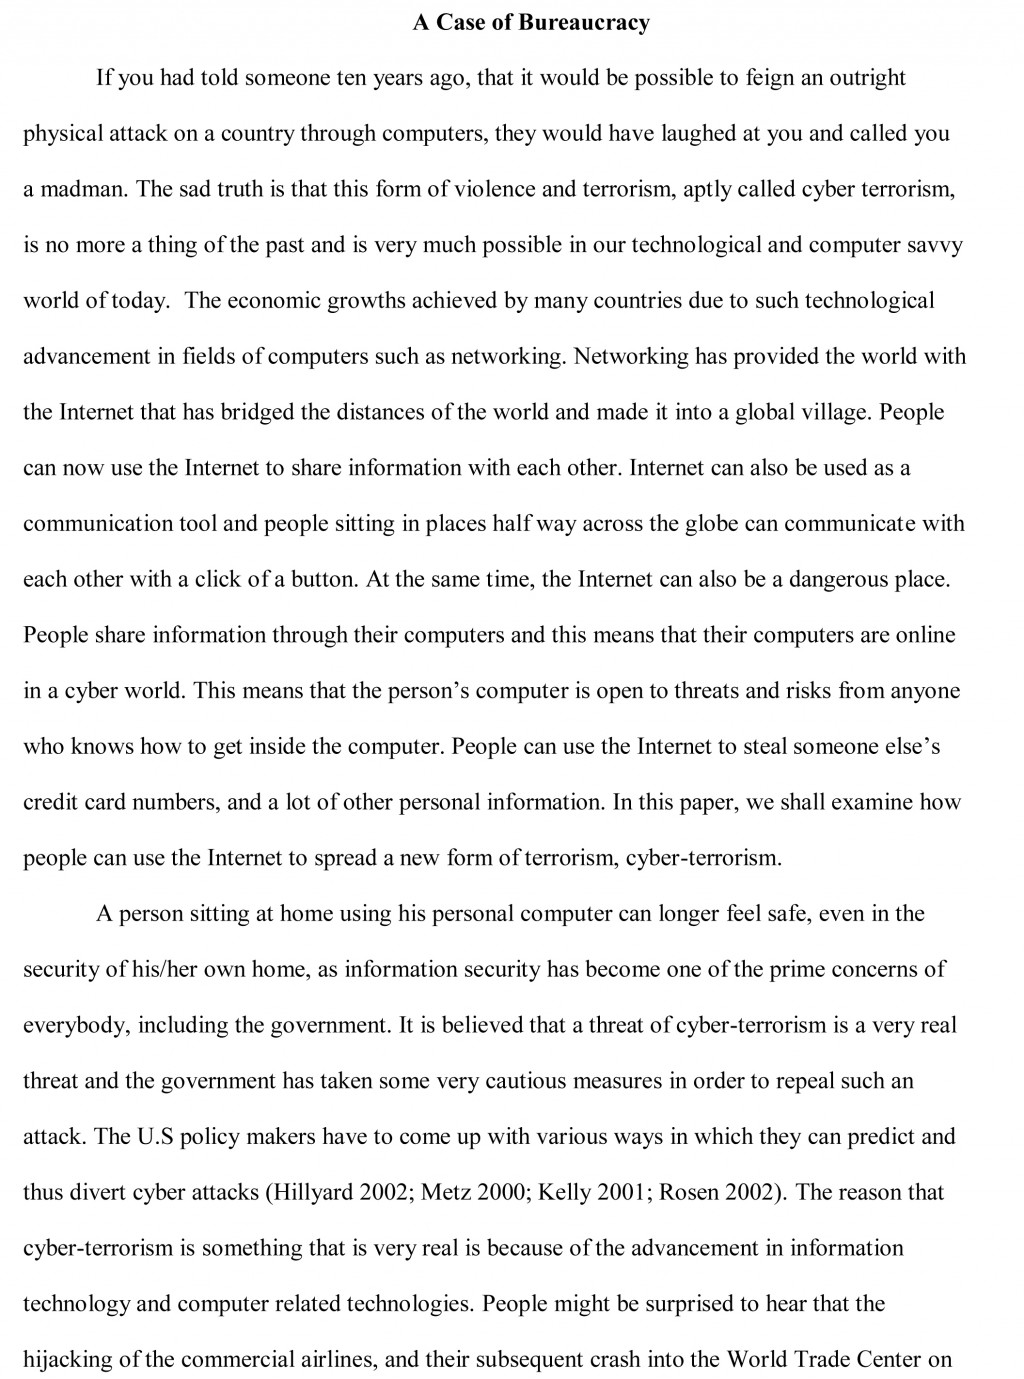 013 Essay Example Writer Free Writing Gse Bookbinder Co Pertaining Amazing App Generator Software Download Large